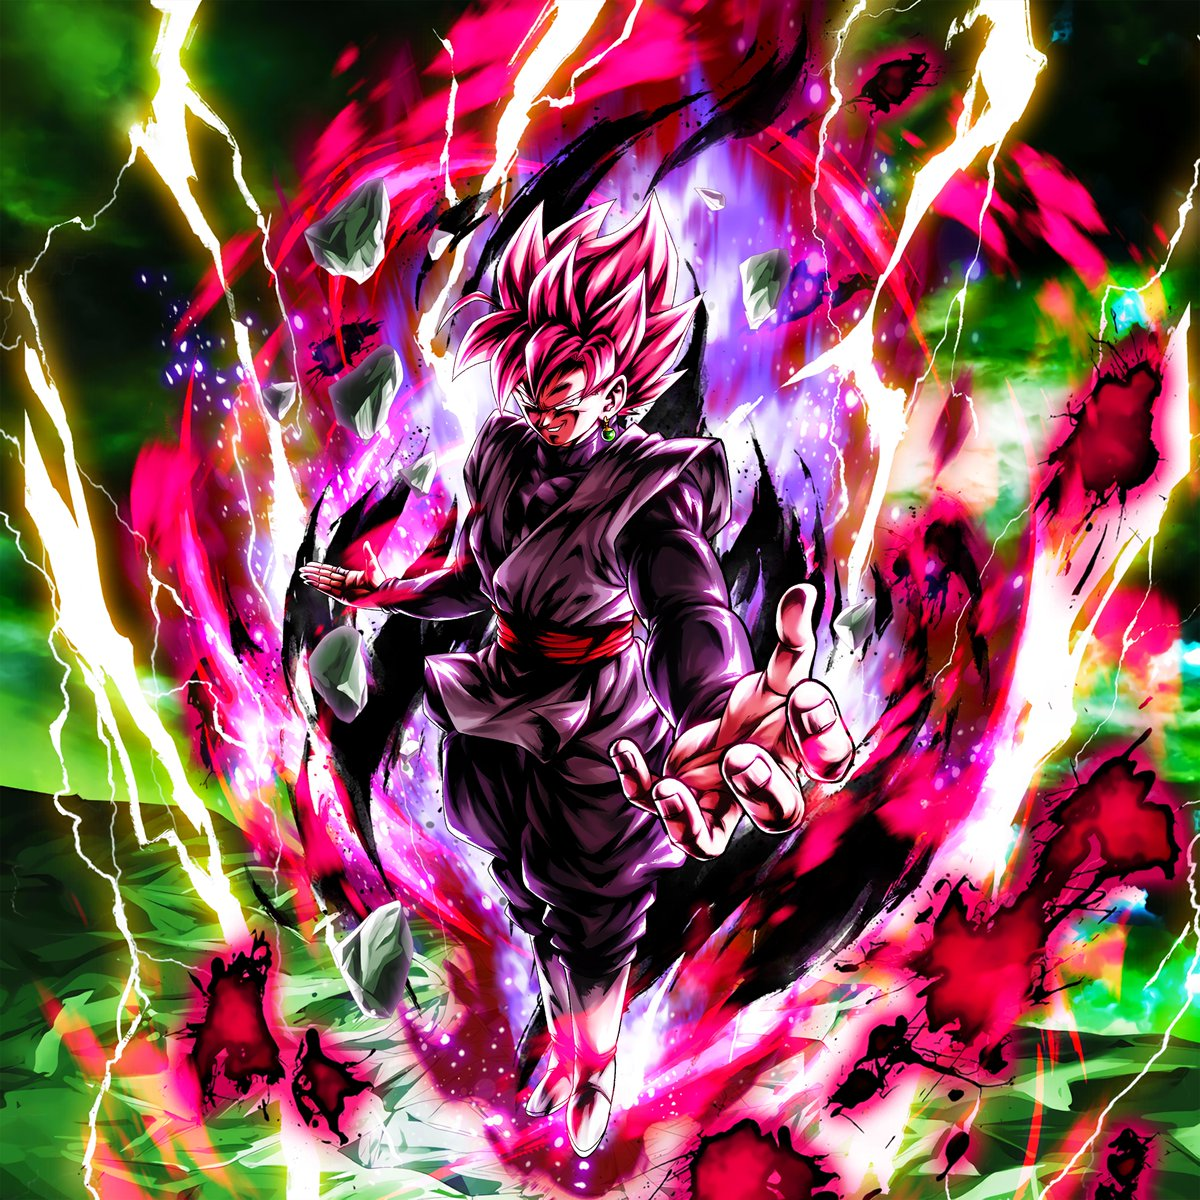 Hydros On Twitter Super Saiyan Goku Black Rose Character Art 4k Pc Wallpaper 4k Phone Wallpaper Dblegends Dragonballlegends